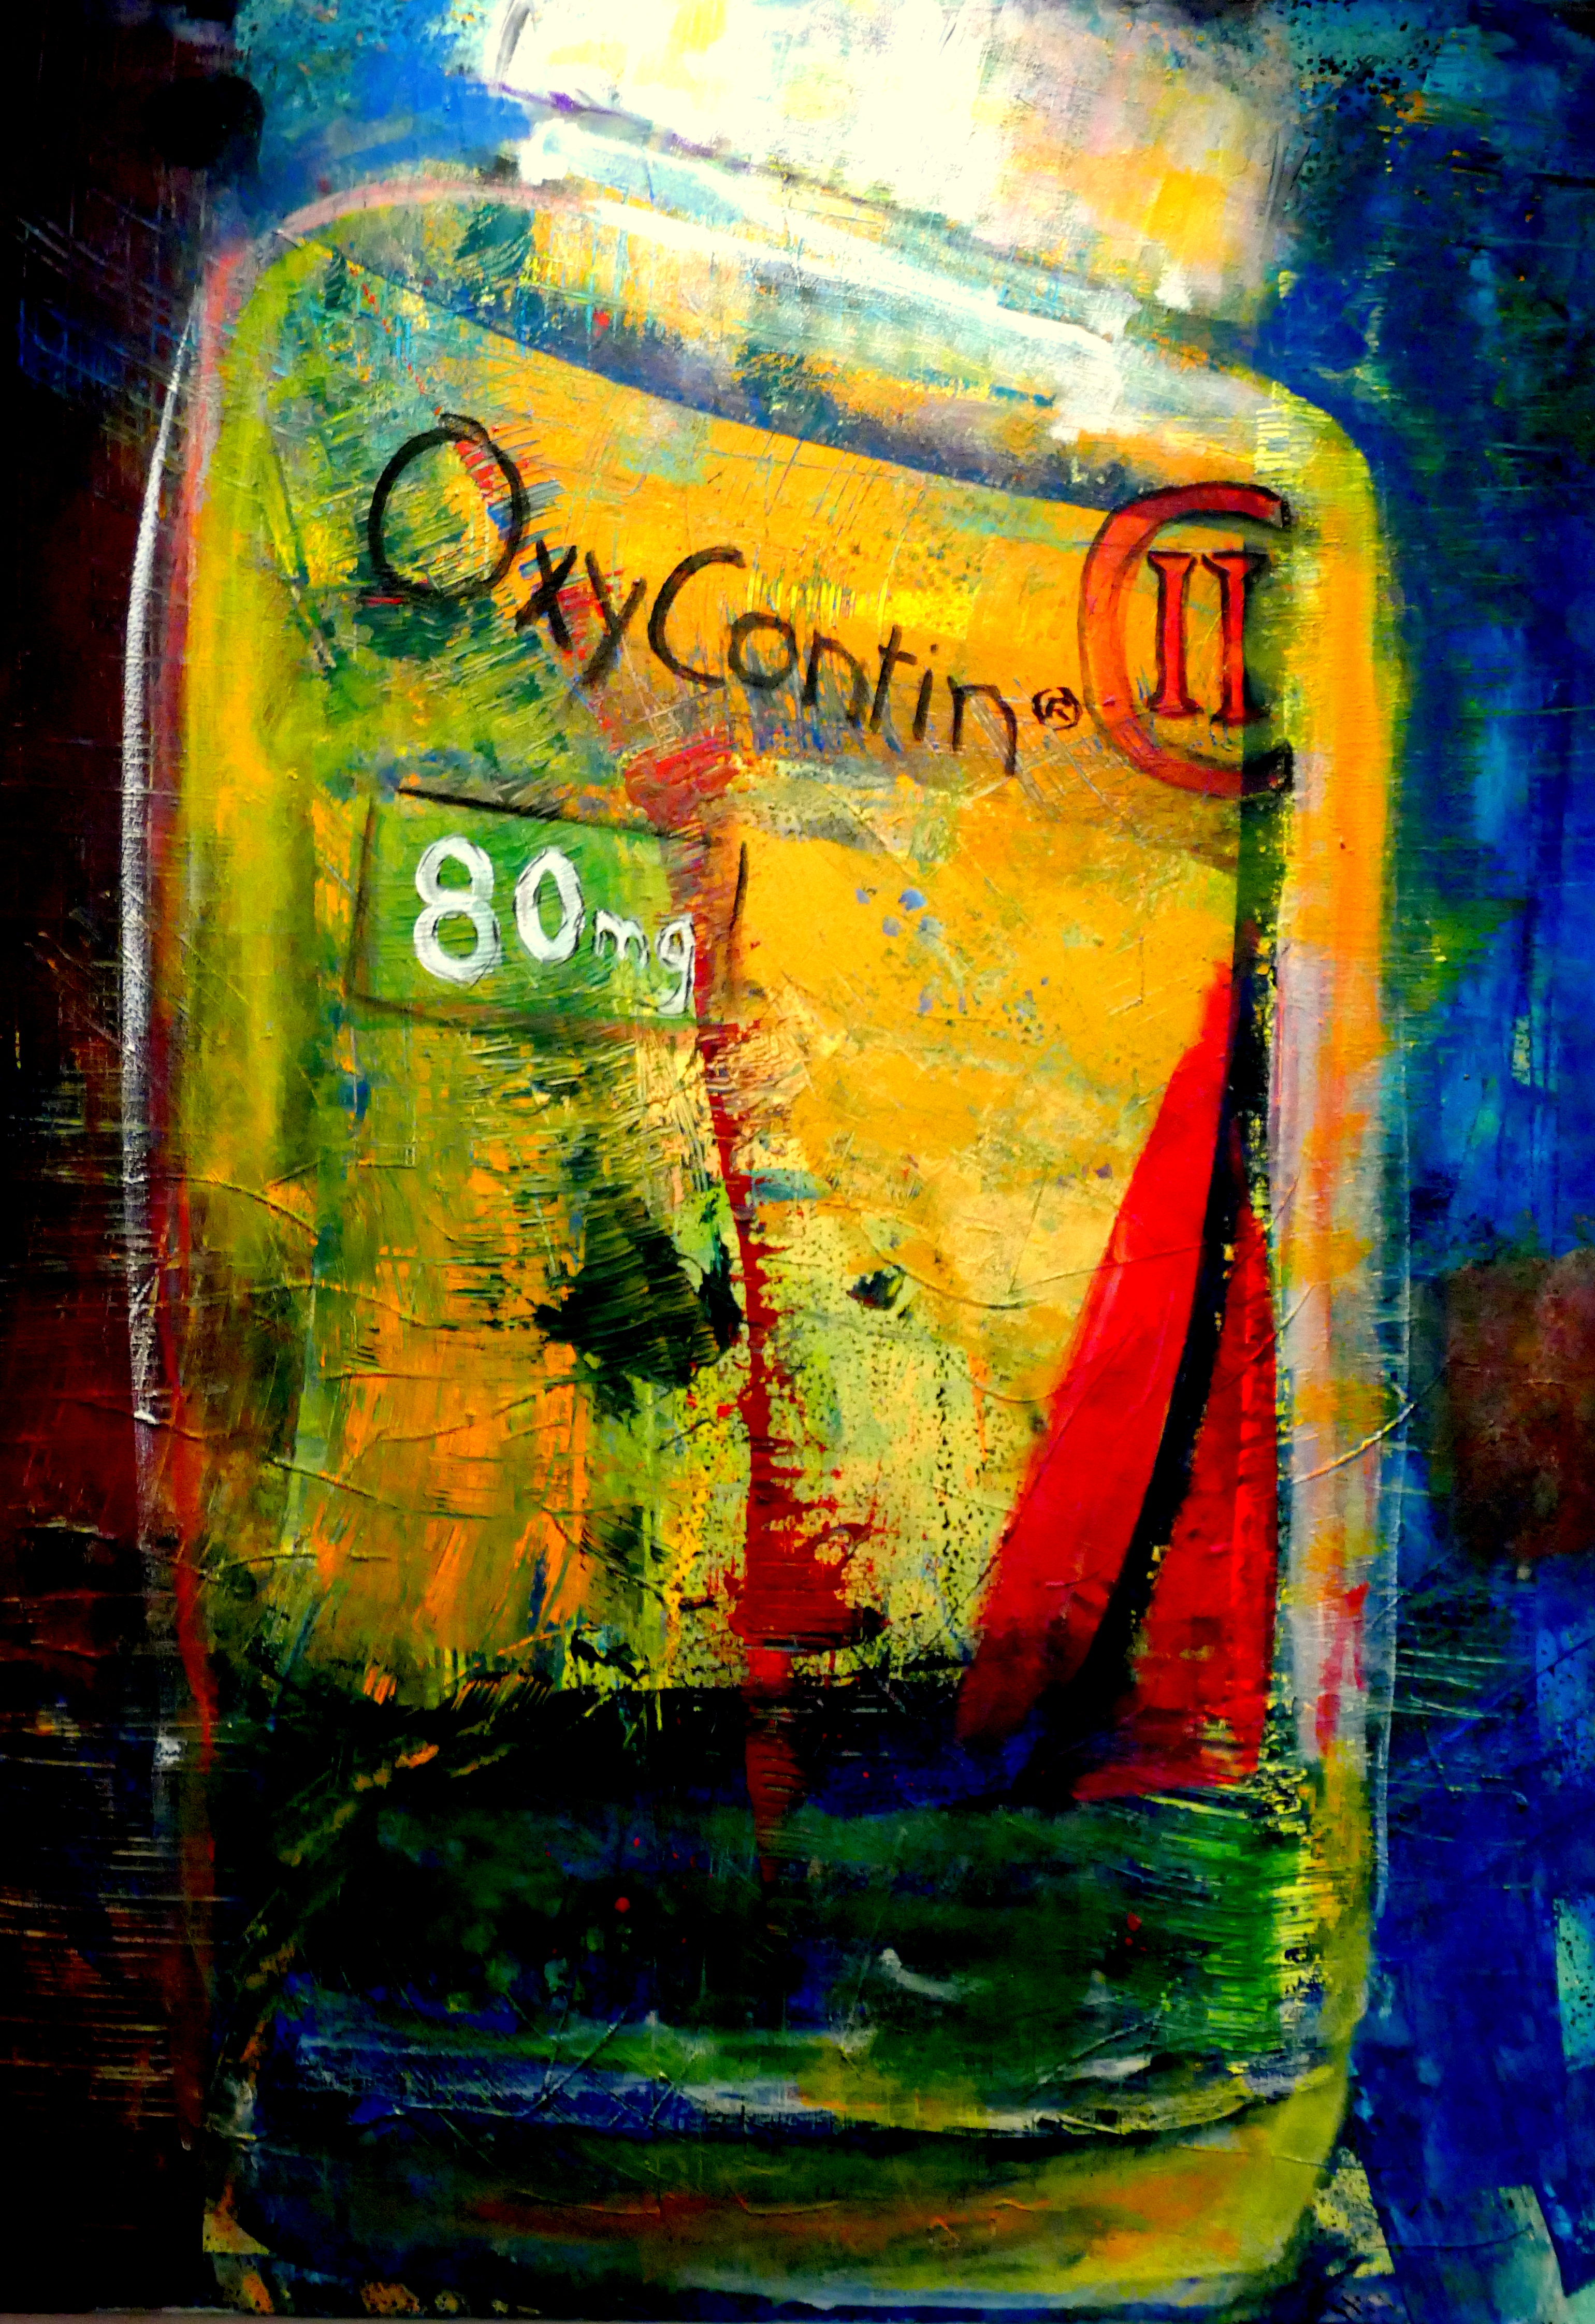 Oxycontin painting in a home in LA